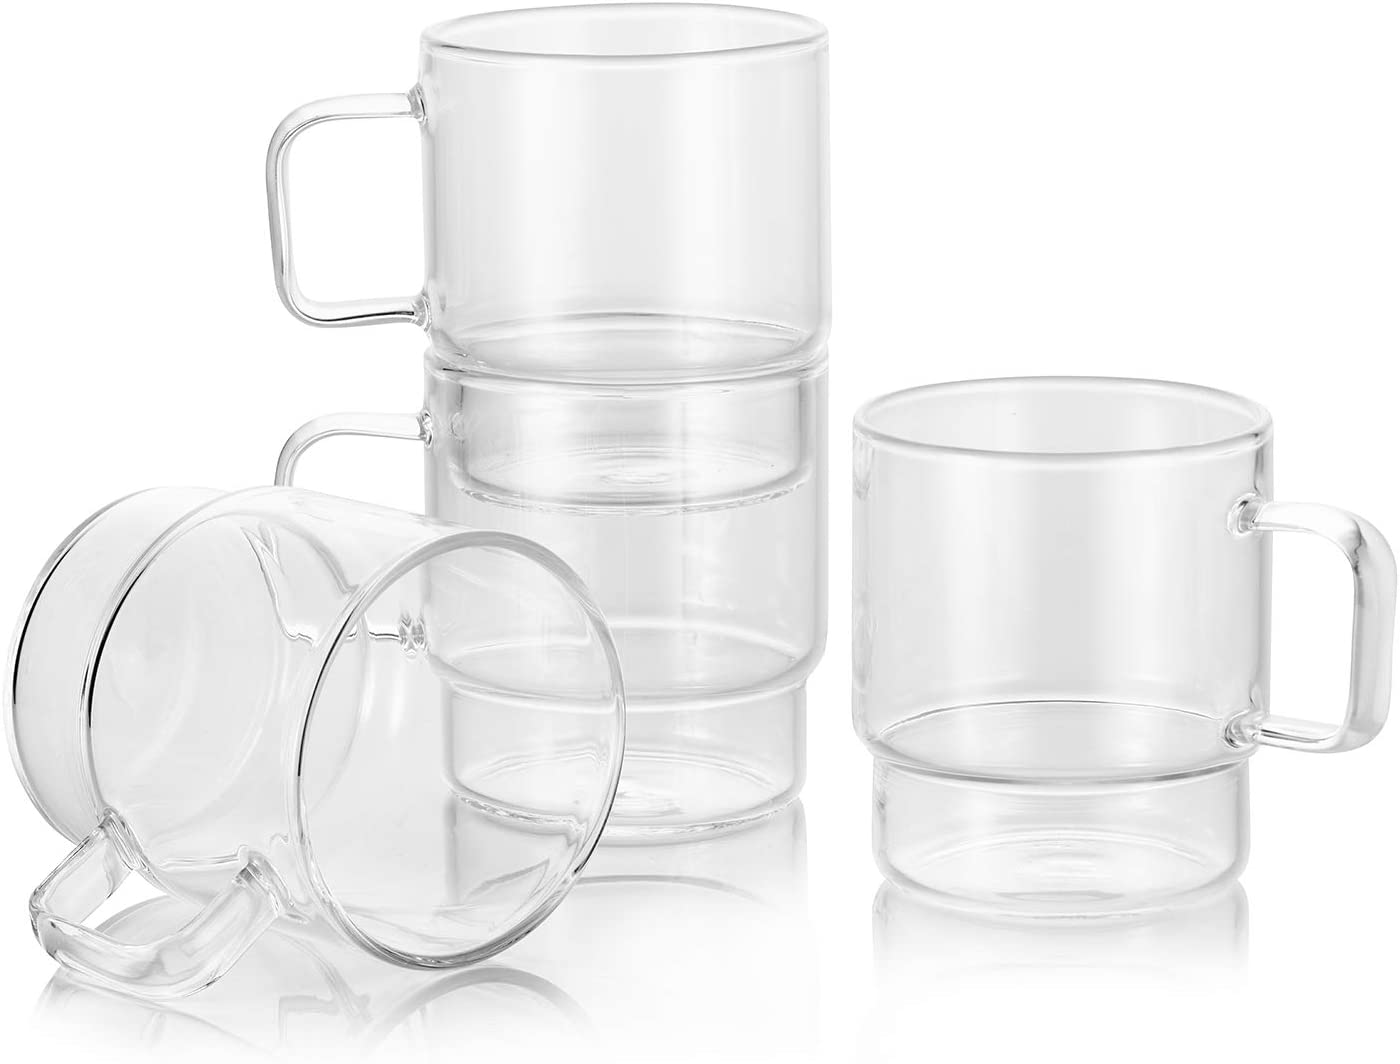 Enindel 3026.02 Glass Latte Cups - Stackable Coffee Mug, Tea Cup, Clear, 9 OZ, Set of 4